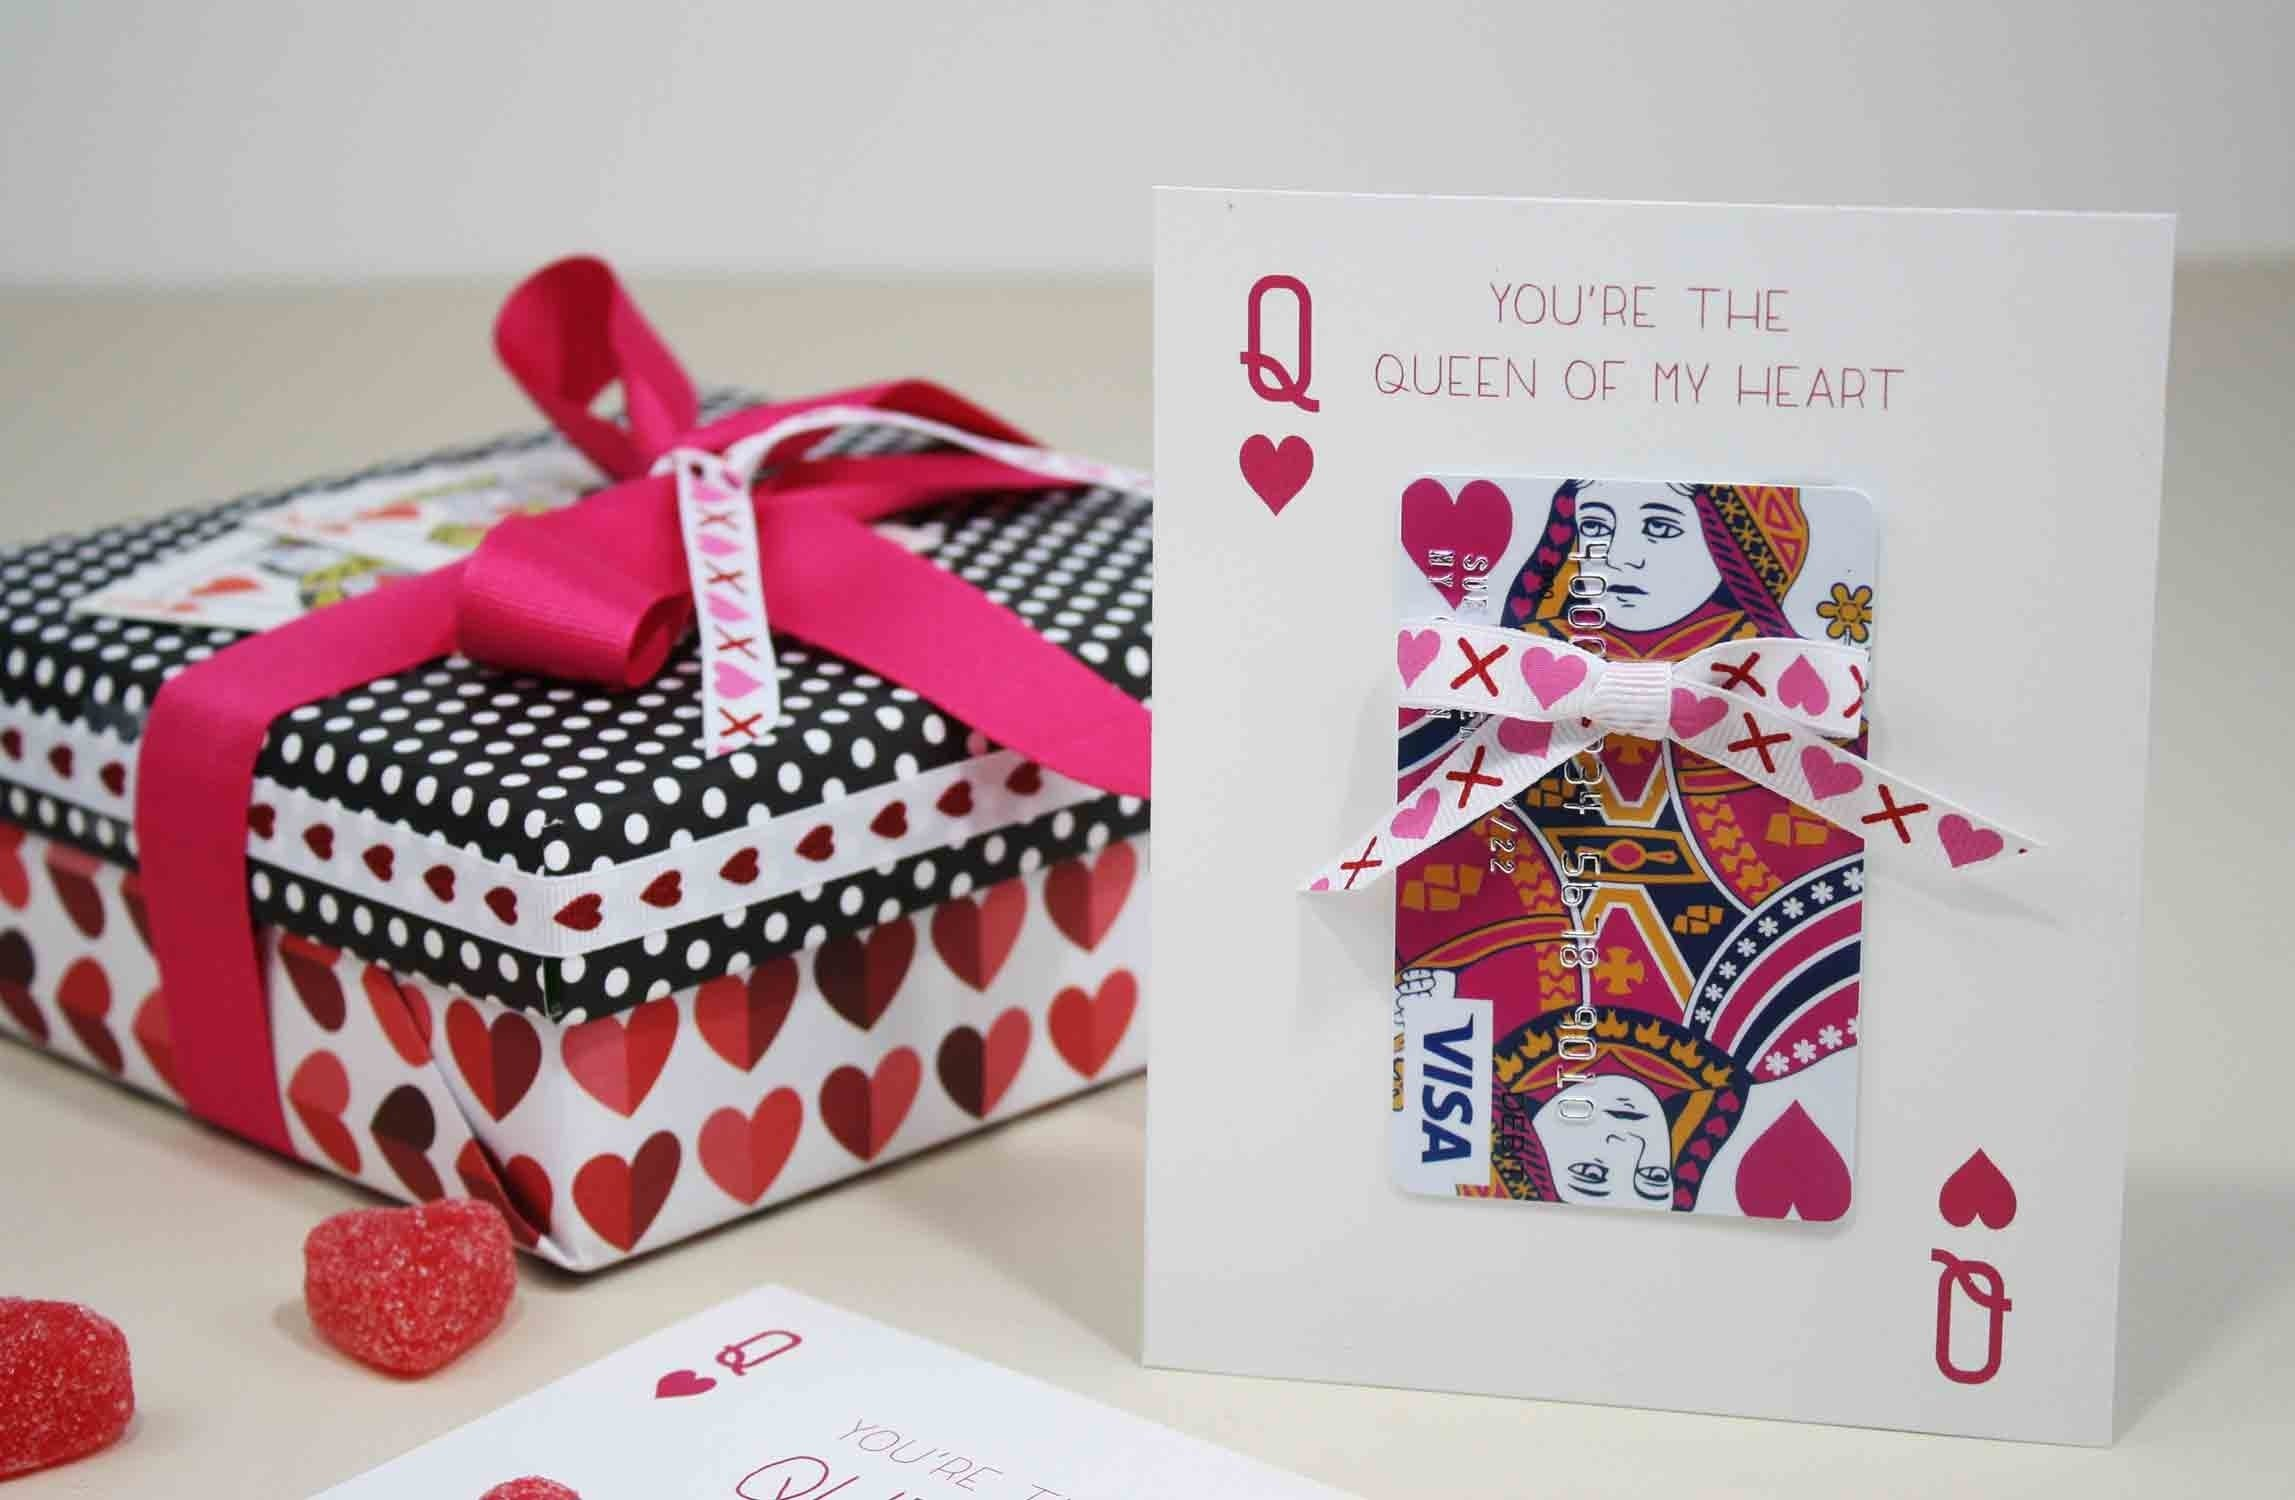 10 Awesome Cute Valentines Day Ideas For Girlfriend gift card girlfriends guide to valentines day 2015 gcg 2020